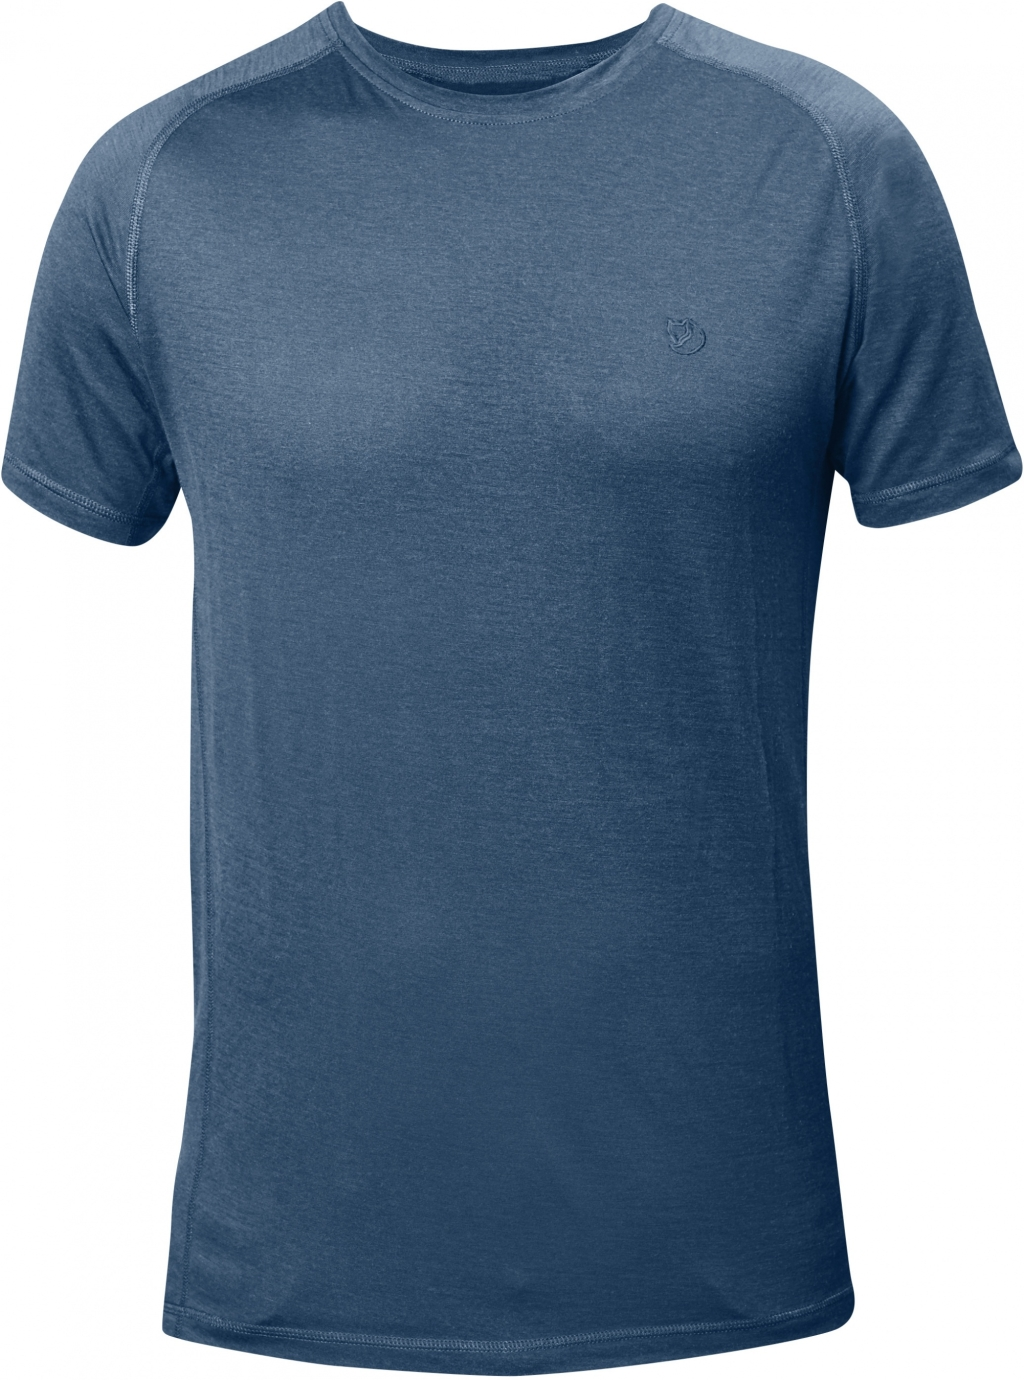 FjallRaven Abisko Trail T-shirt Uncle Blue-30